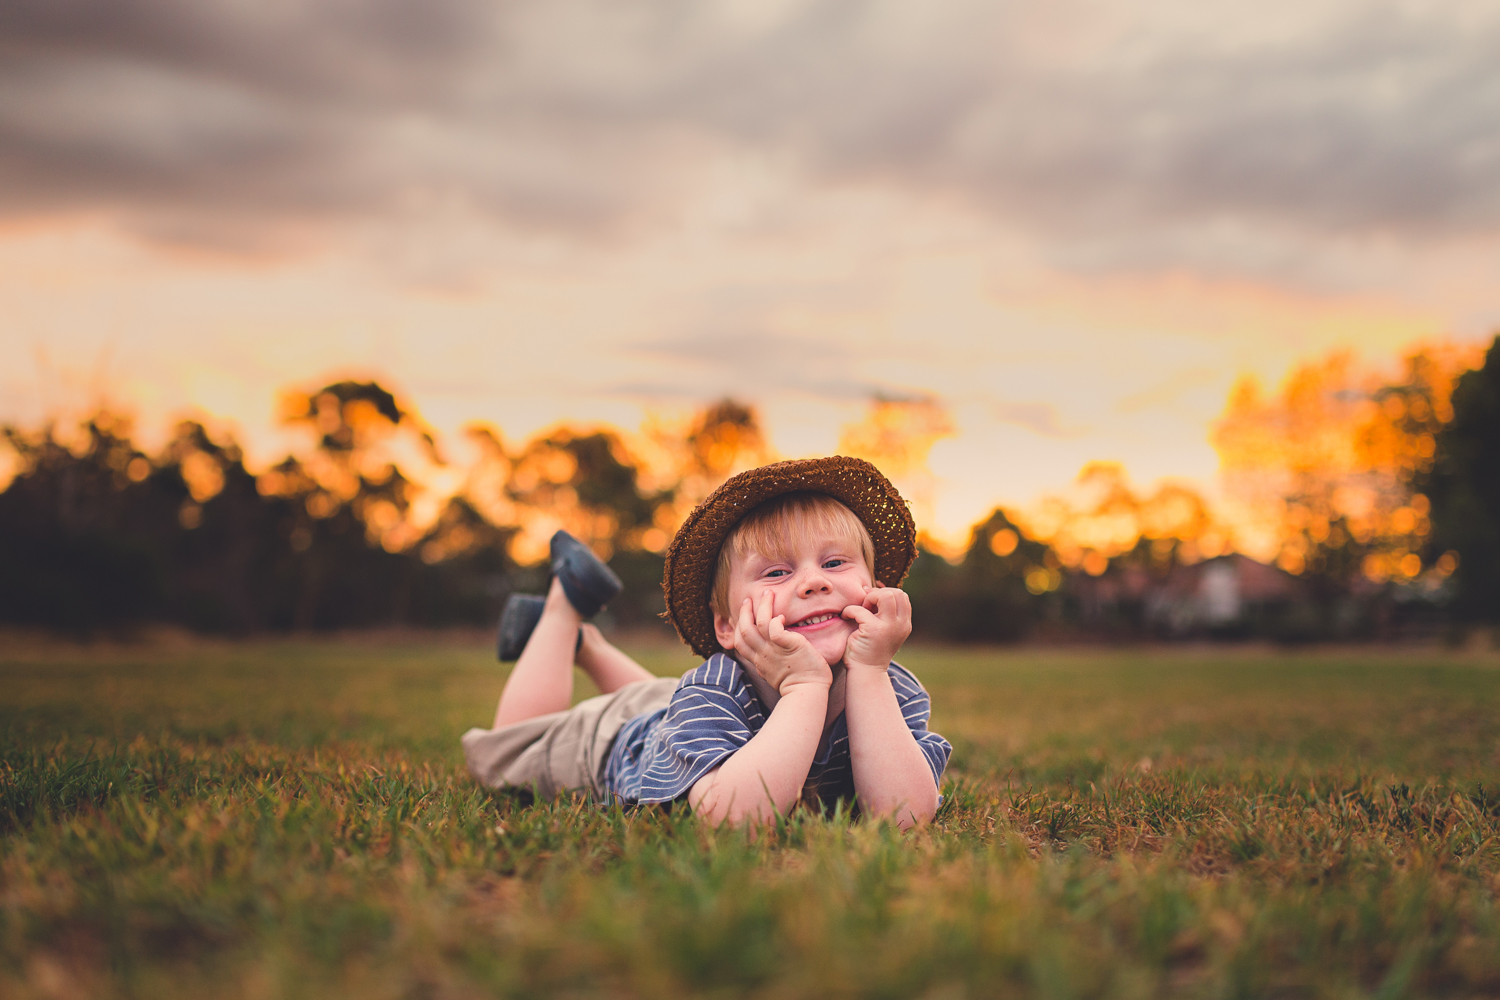 Melbourne child photography session | Laura Coutts Photography